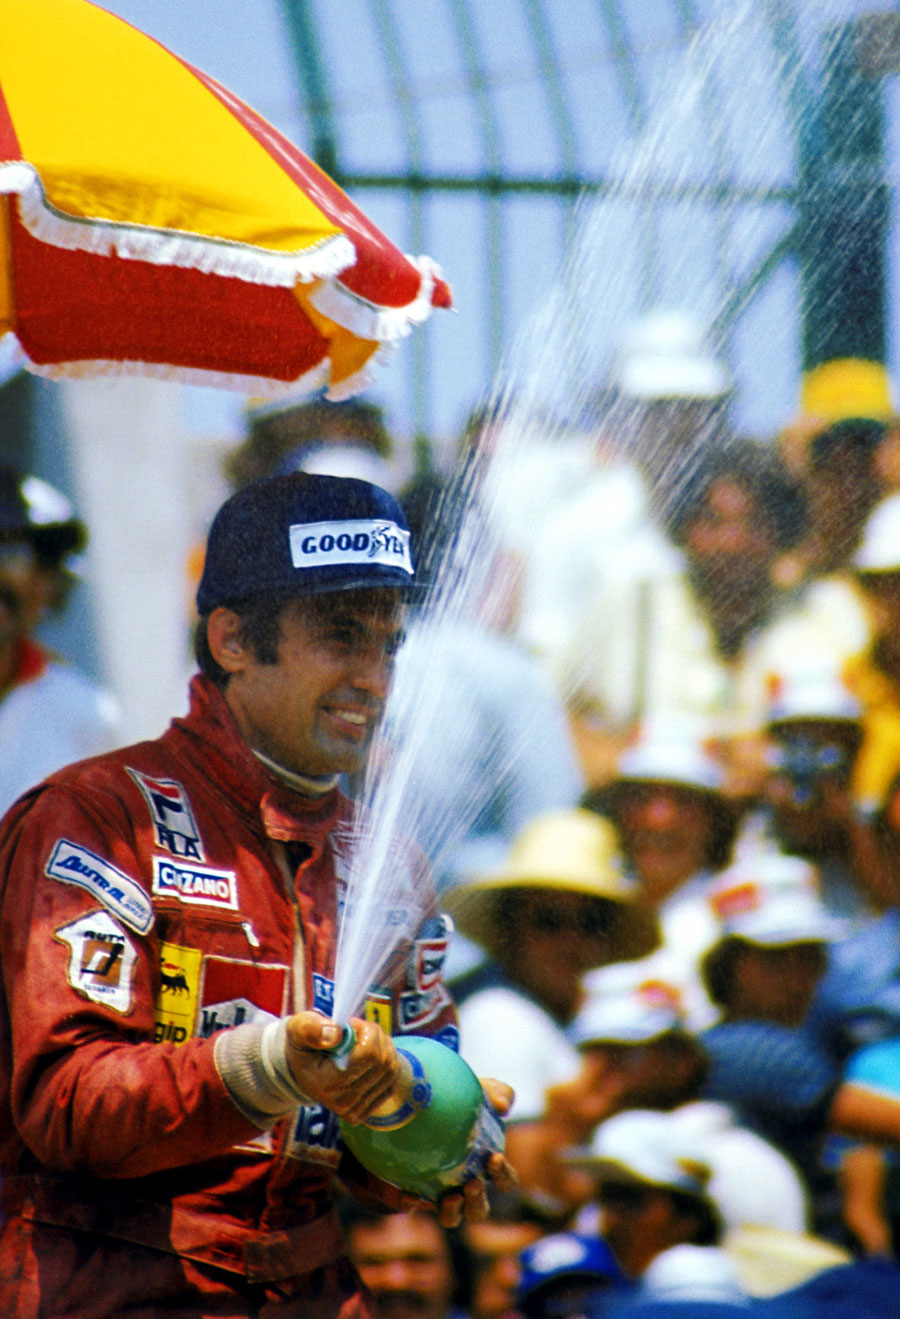 Carlos Reutemann  celebrates his victory on the podium